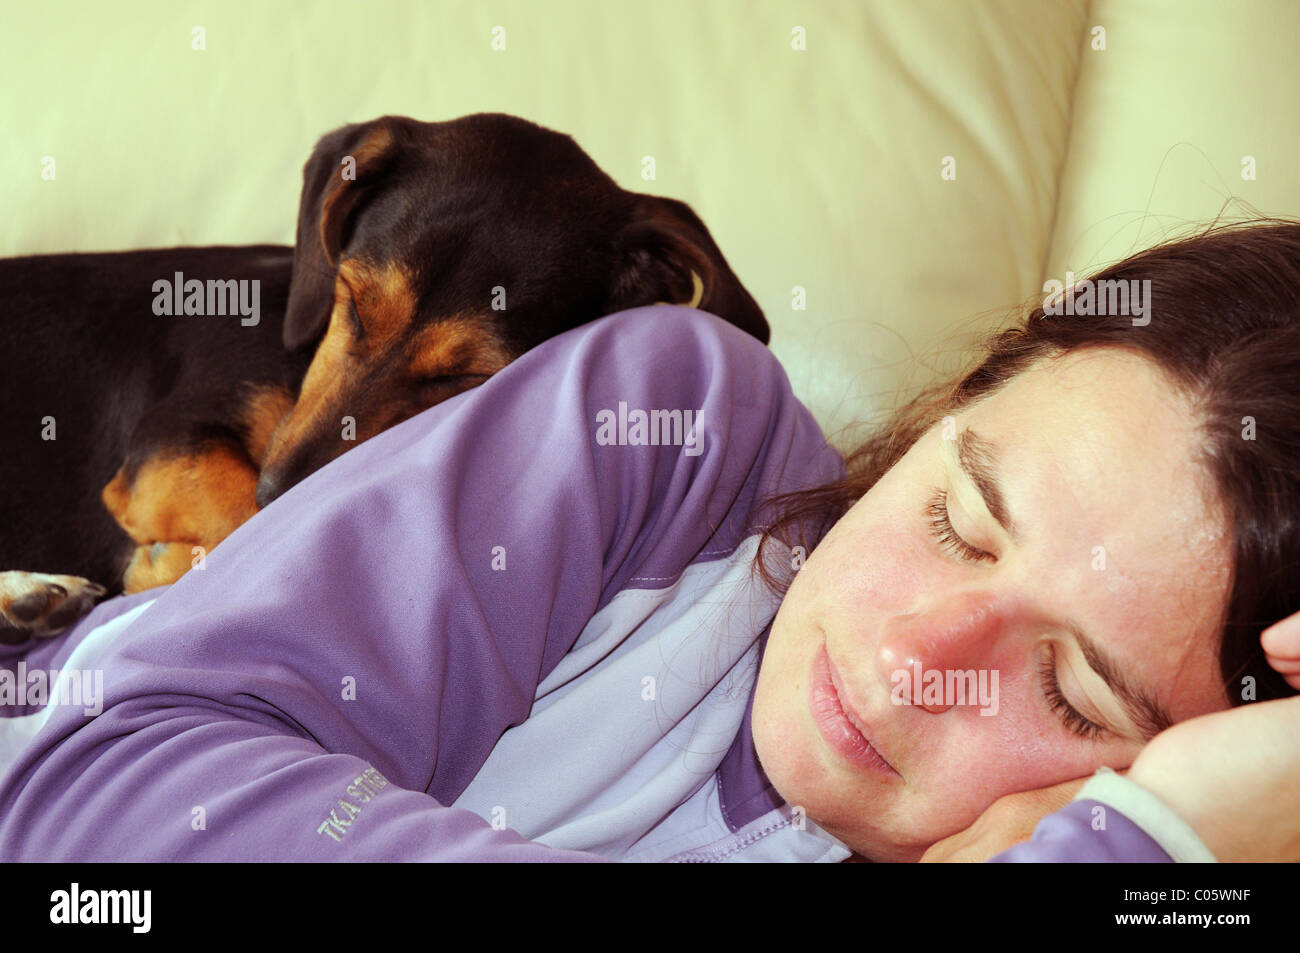 A dog curled up asleep on a sleeping woman - Stock Image